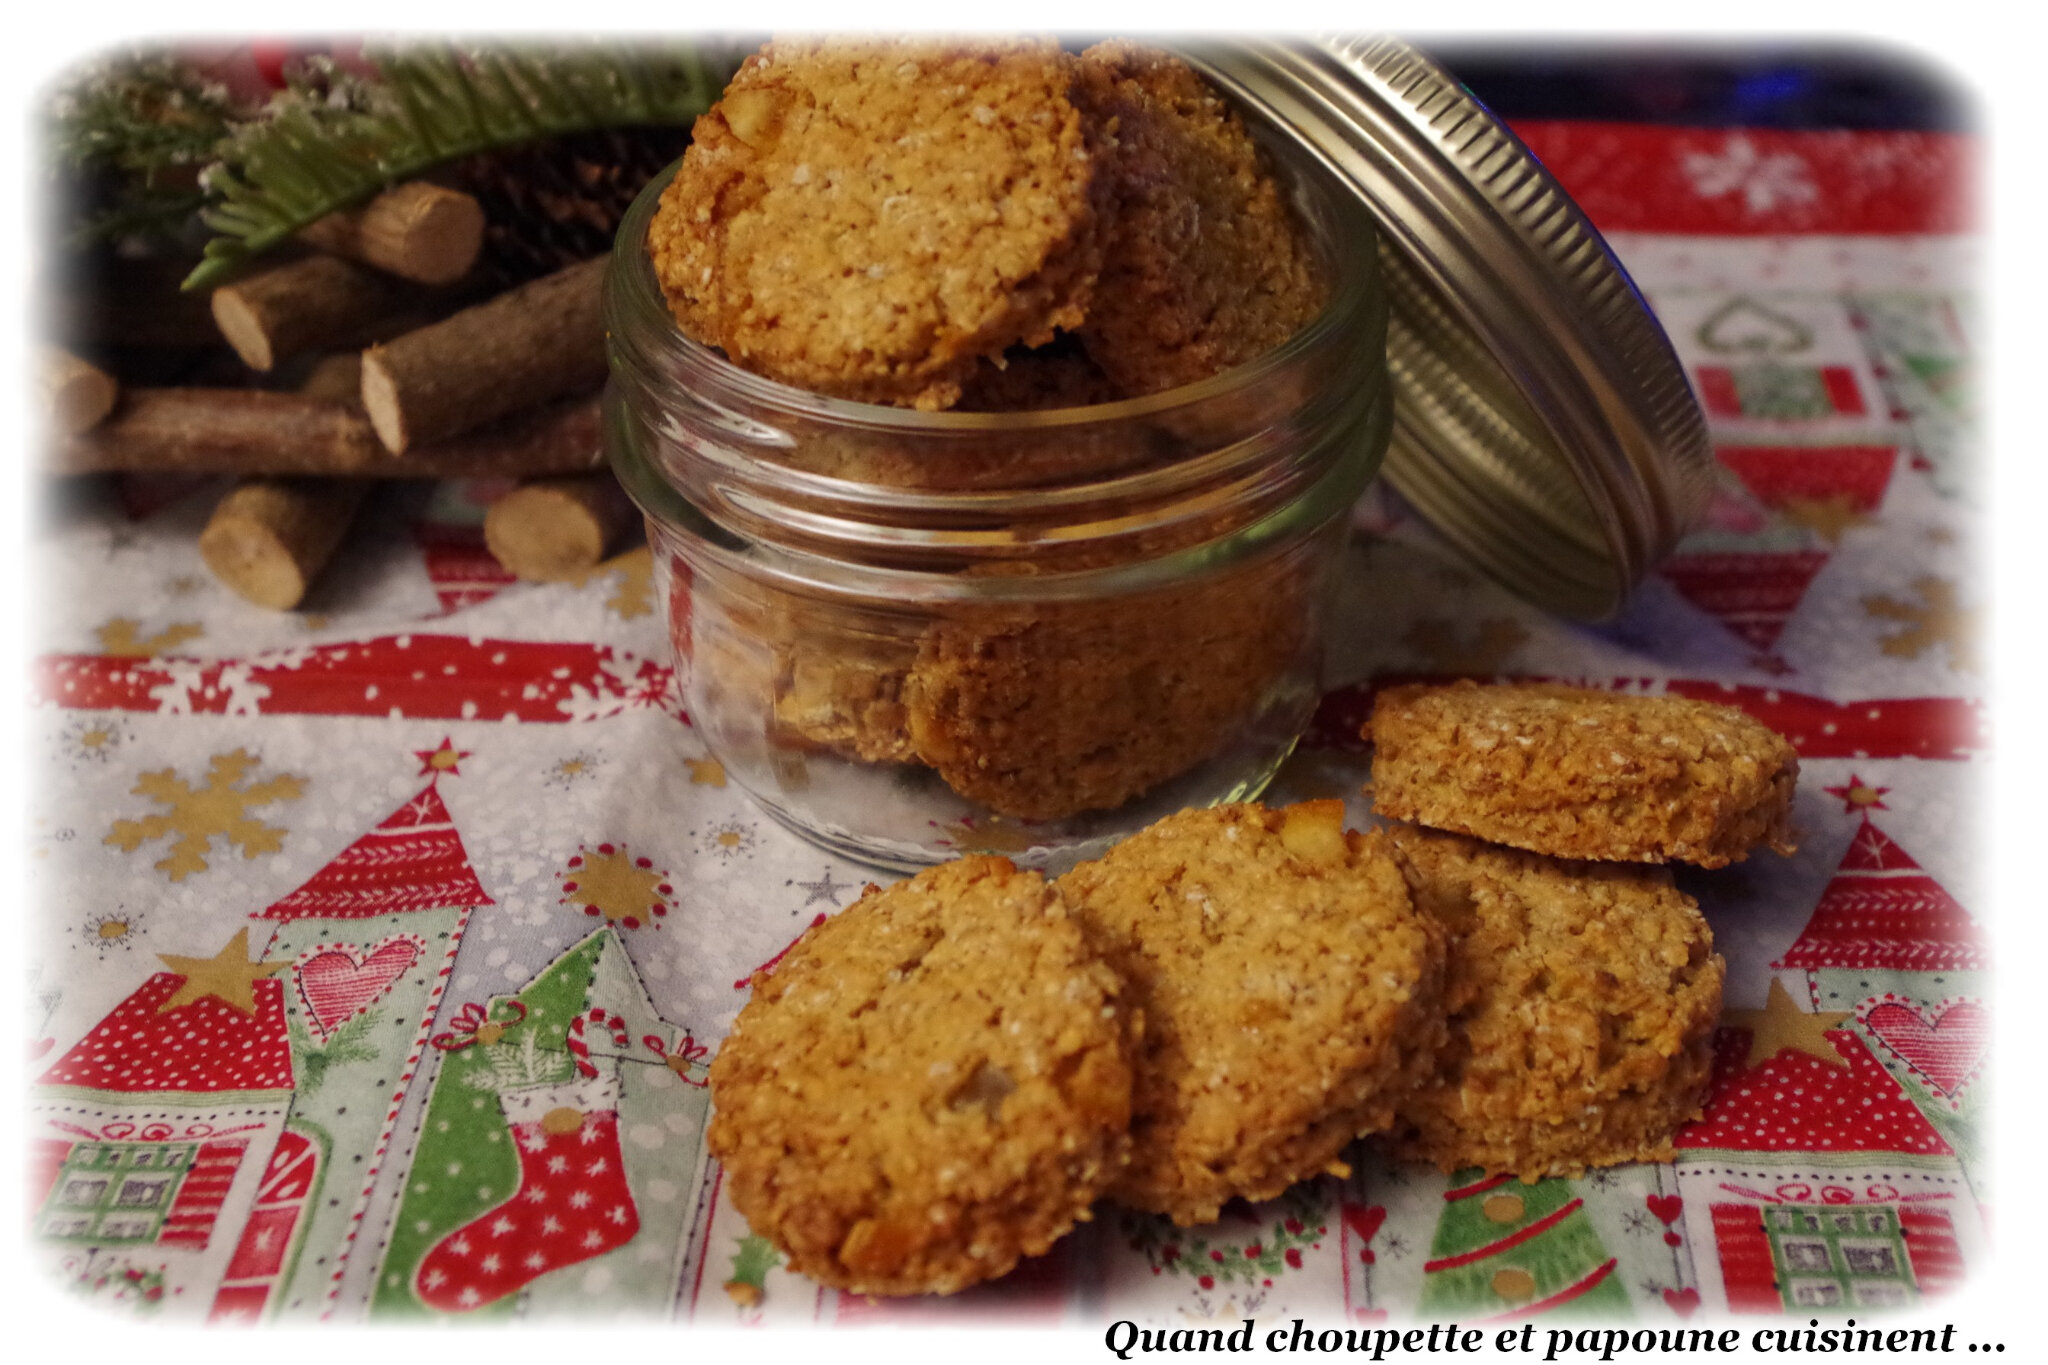 COOKIES AUX FLOCONS D'AVOINE ET ECORCES D'ORANGE CONFITES